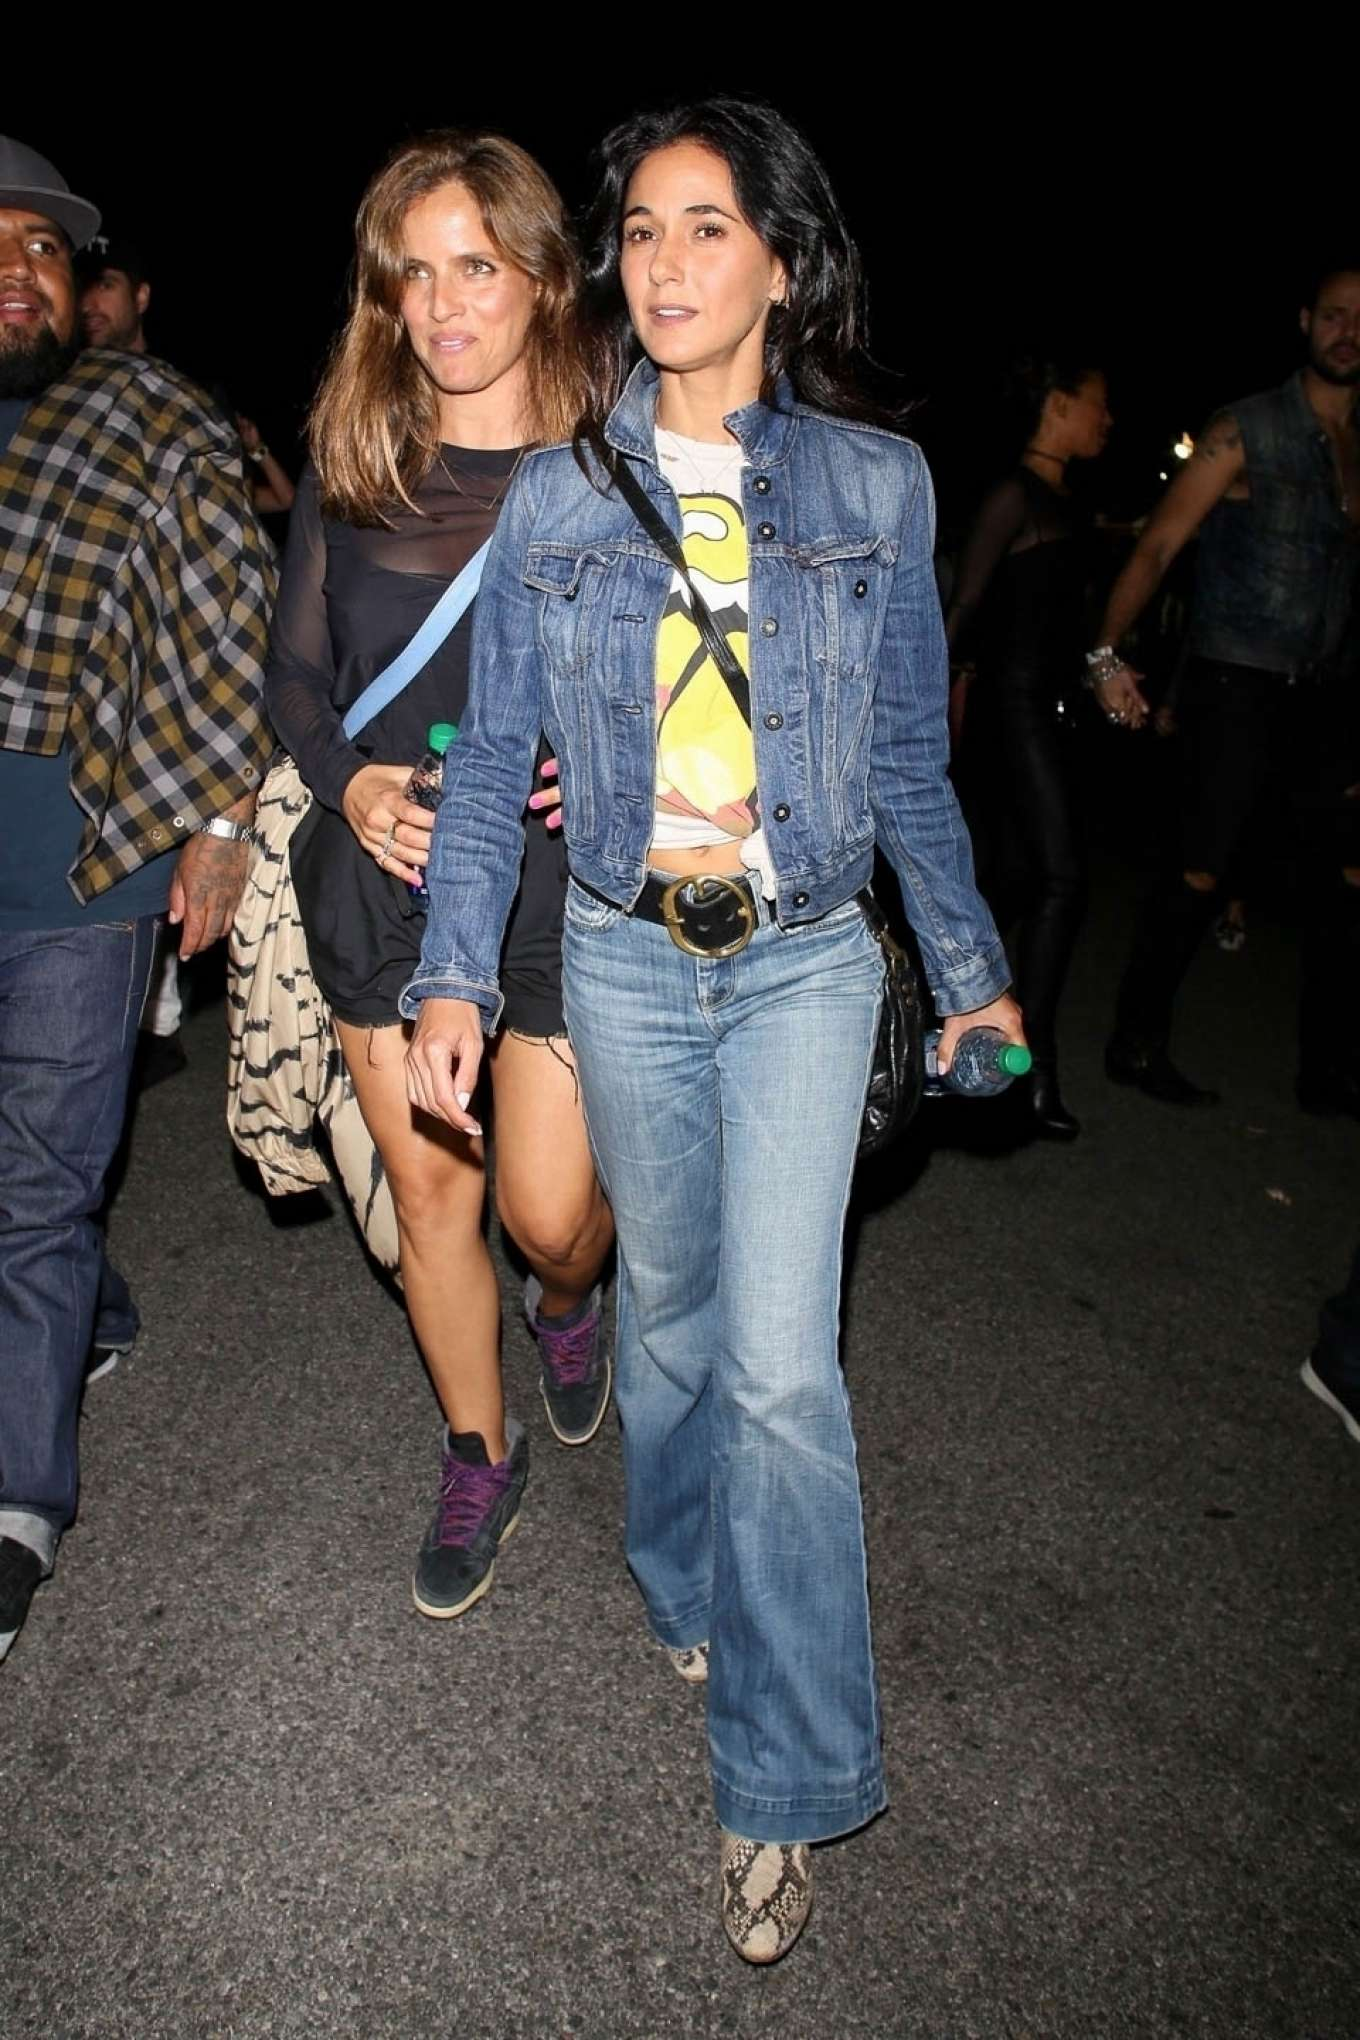 Emmanuelle Chriqui night out at the Rolling Stones Concert